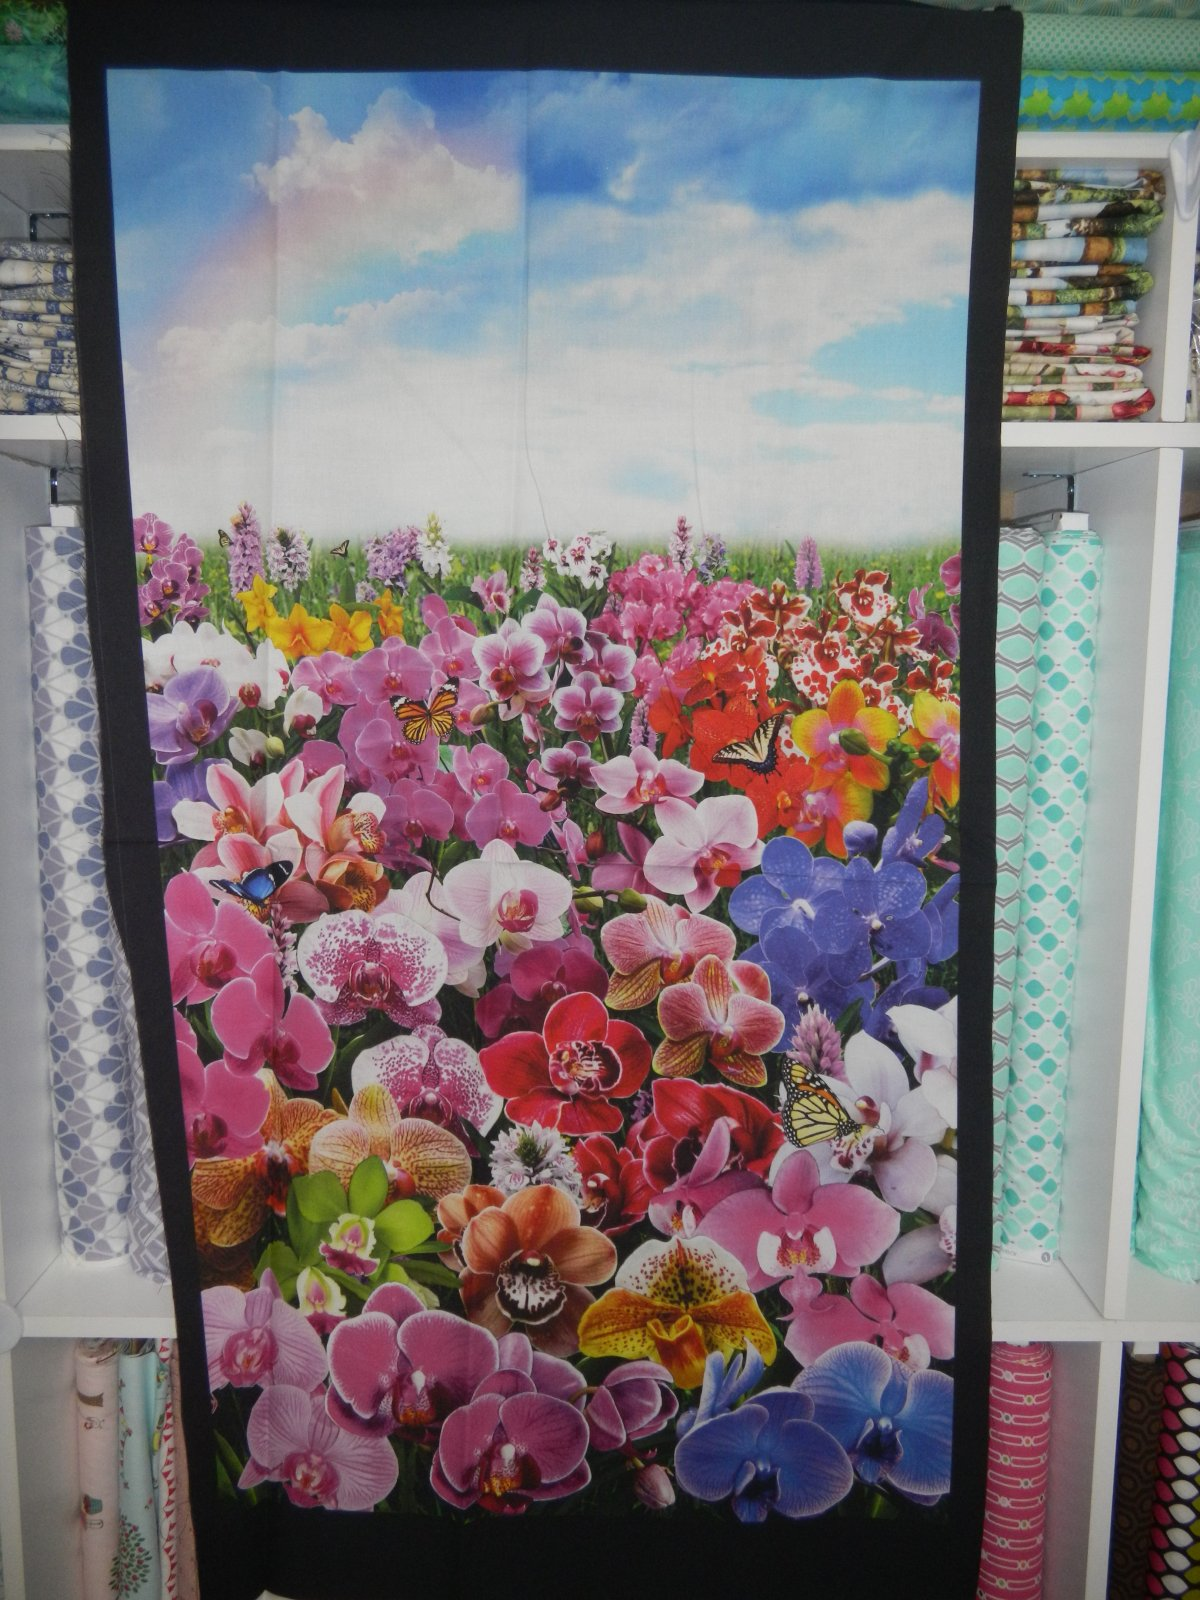 Panel#153 - Flower Meadow - Floral